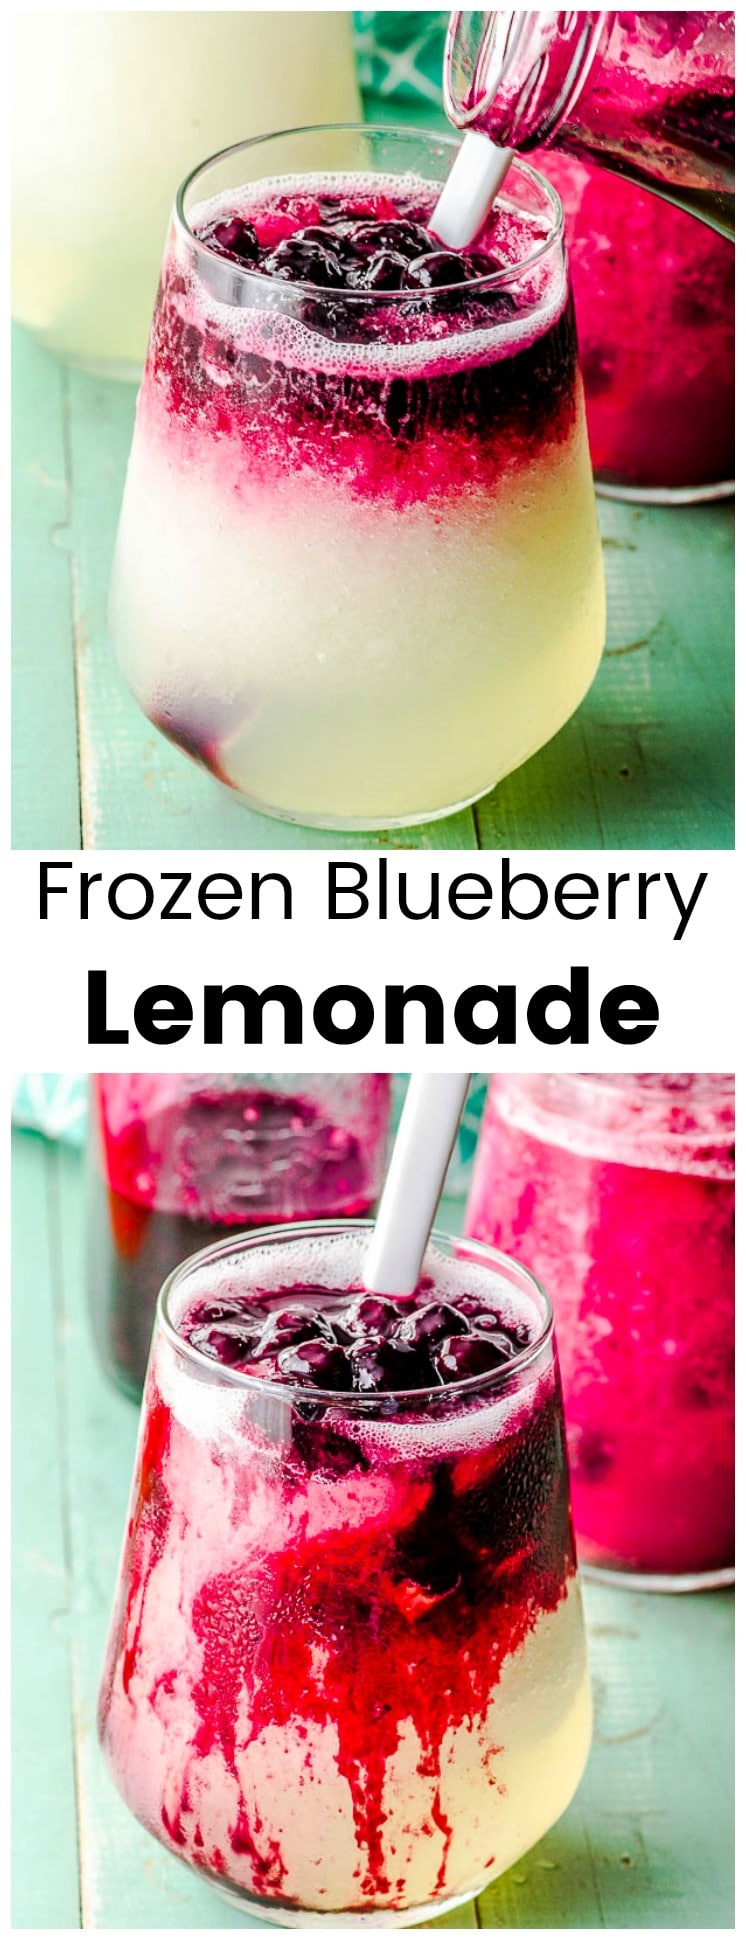 This refreshing Frozen Blueberry Lemonade, will become your new favorite frozen summer drink. Made with a delicious combination of tangy lemons and sweet blueberries. #lemonade #blueberries #blueberry #drink  #summer